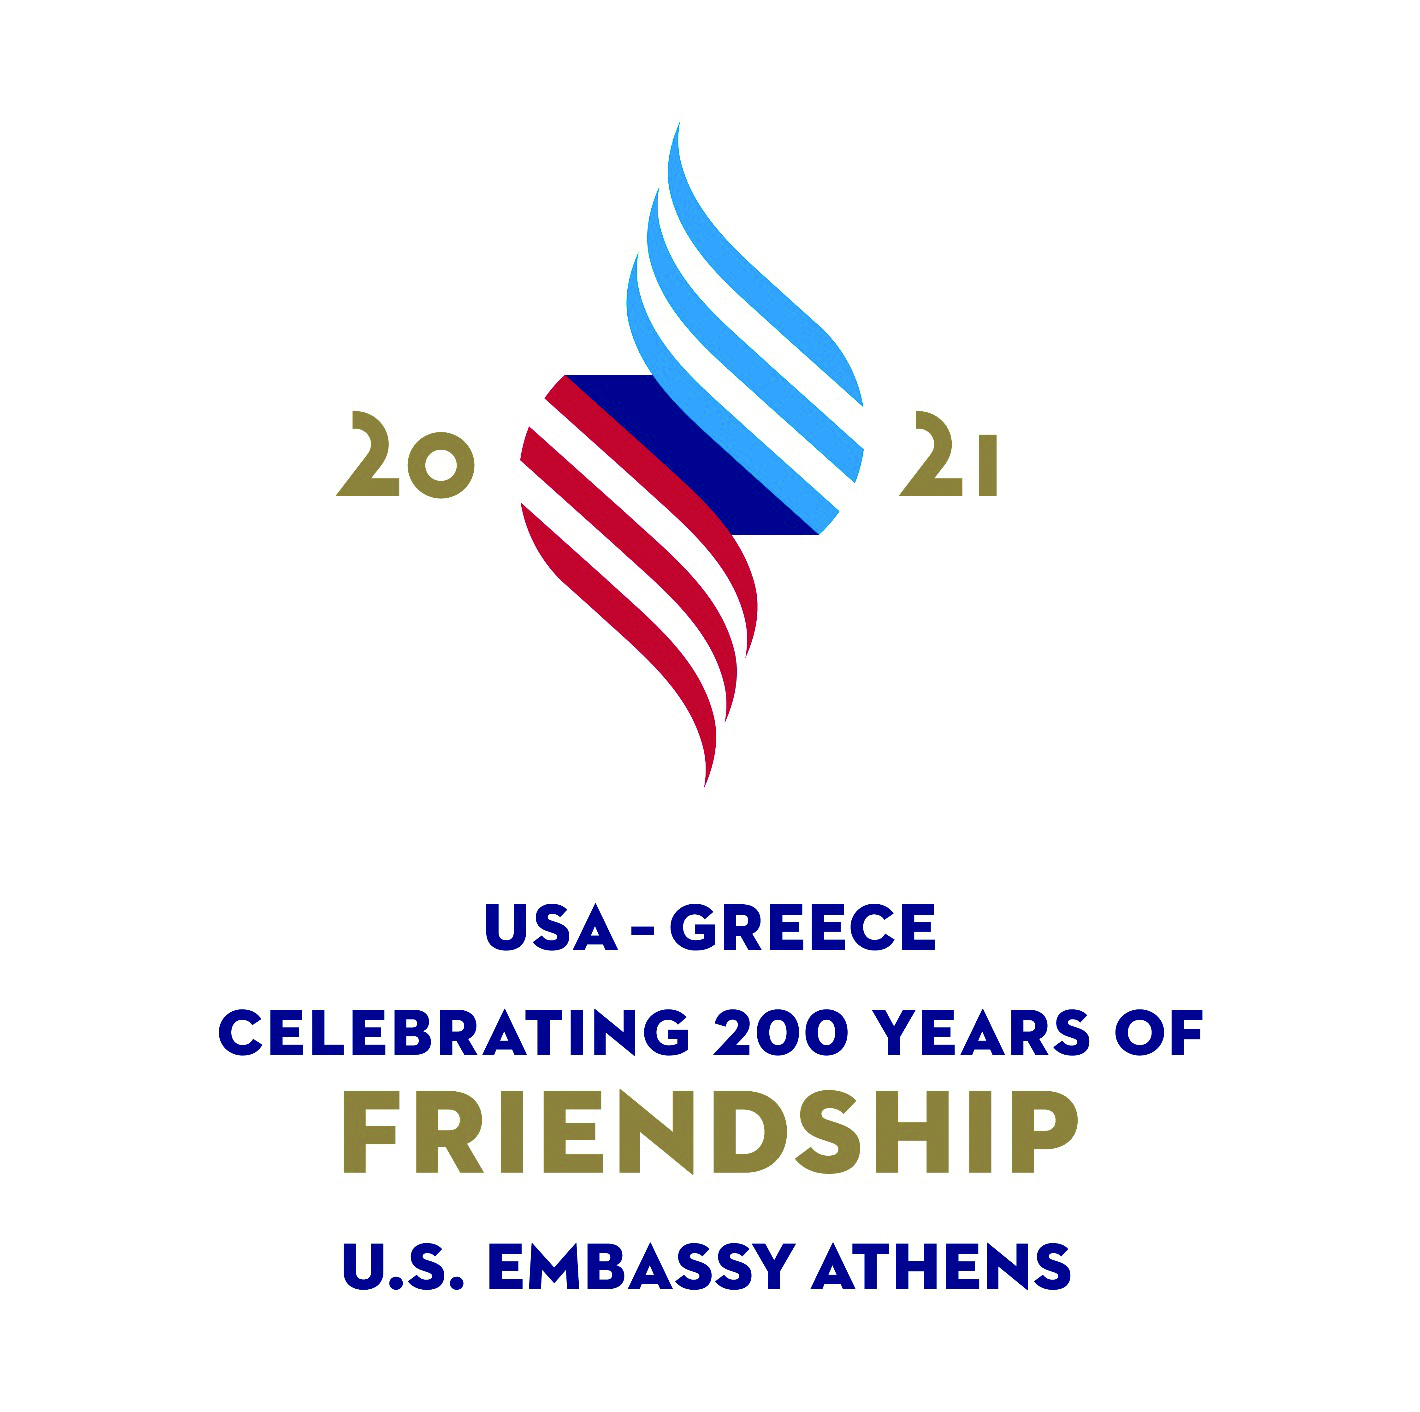 celebrating-200-years-of-friendship1